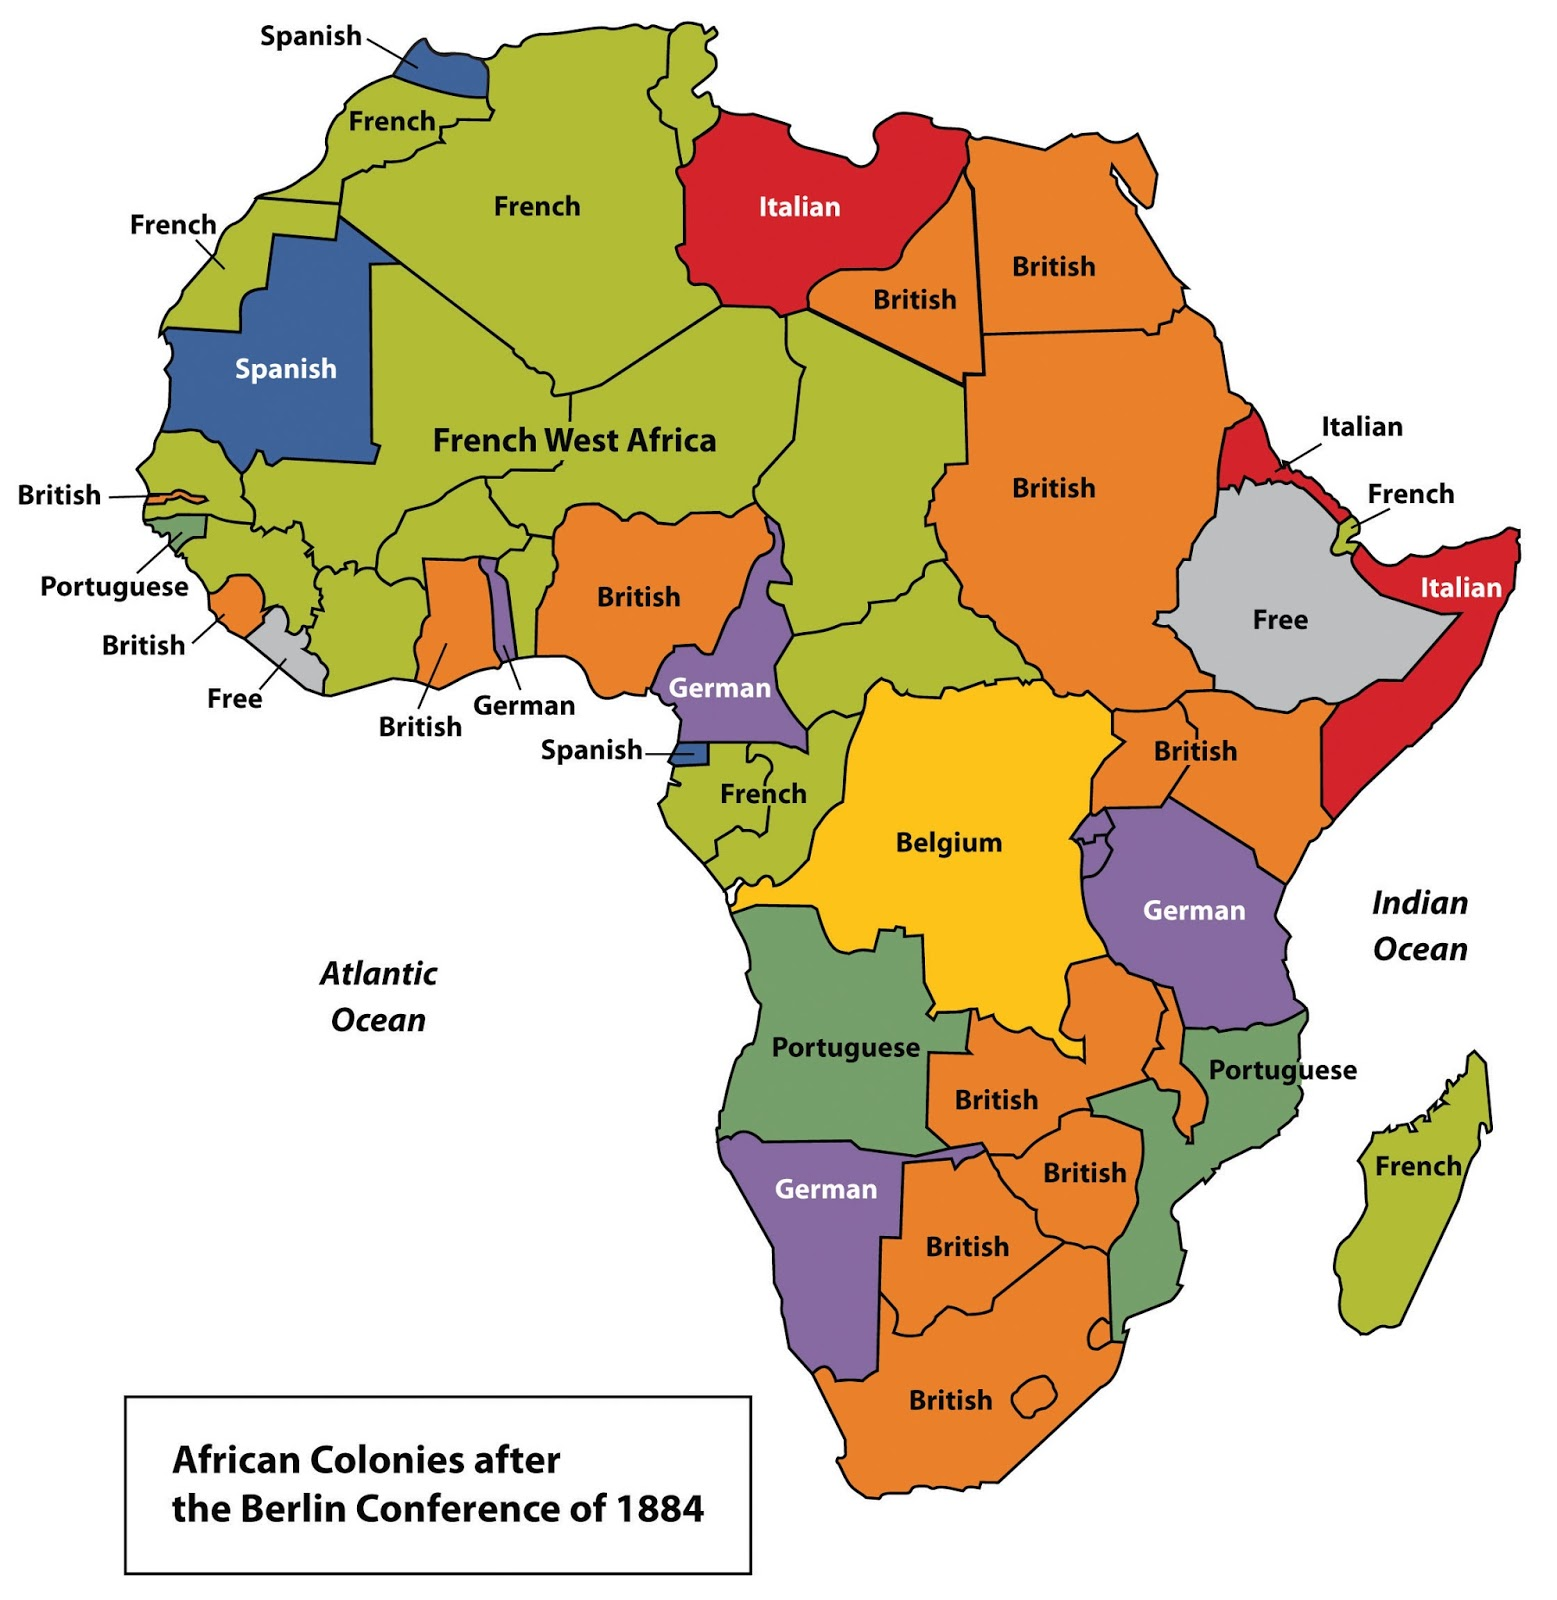 African colonies after the Berlin conference of 1884